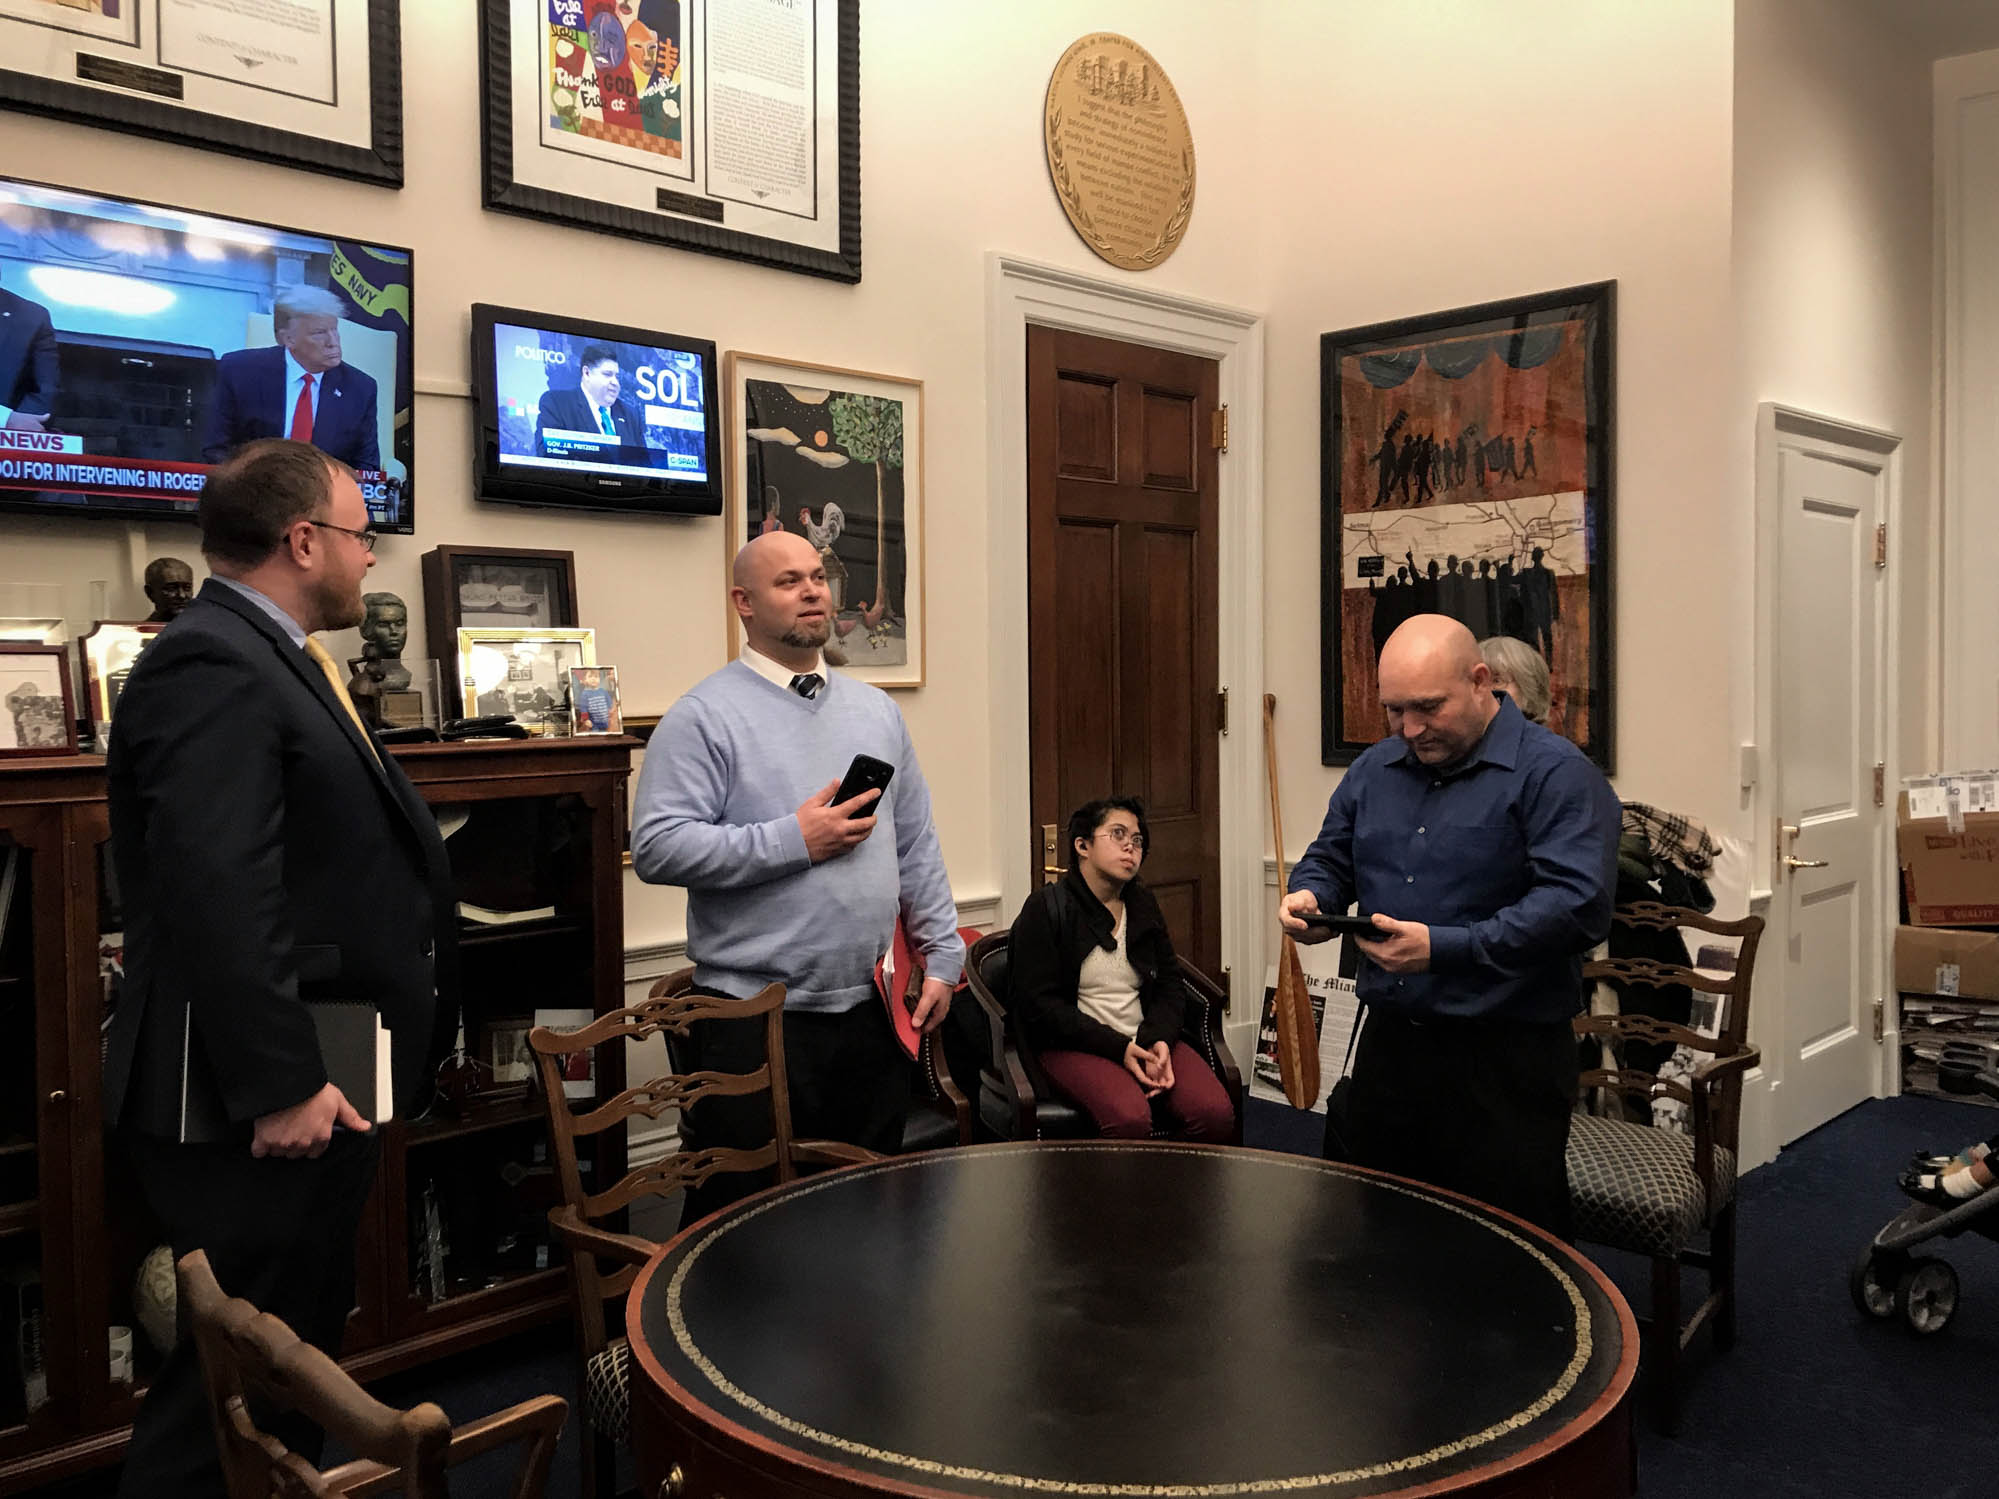 Inside Congressman John Lewis's office